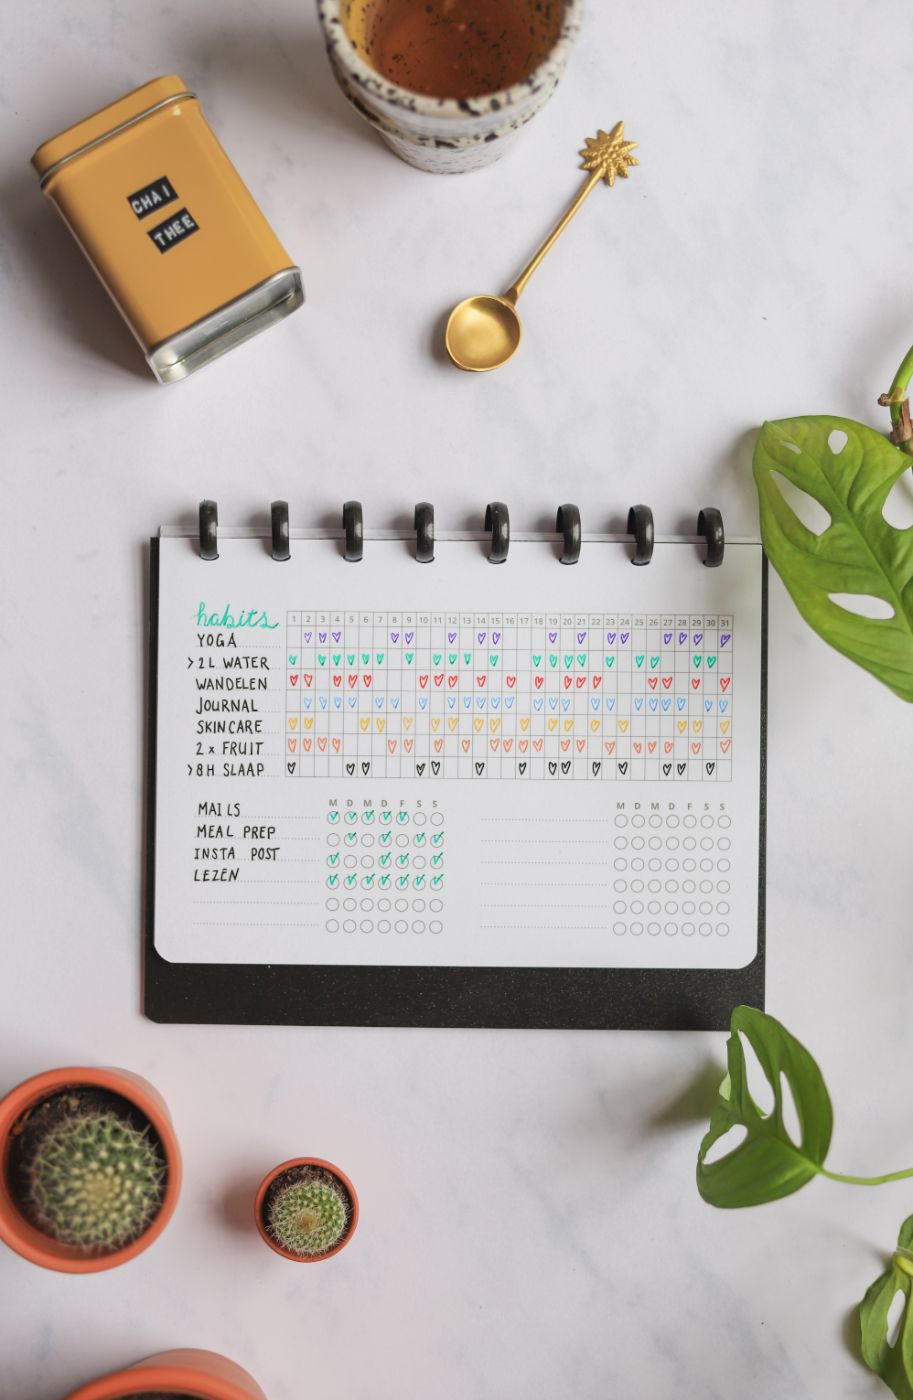 Erasable habit tracker next to assorted items on marble background